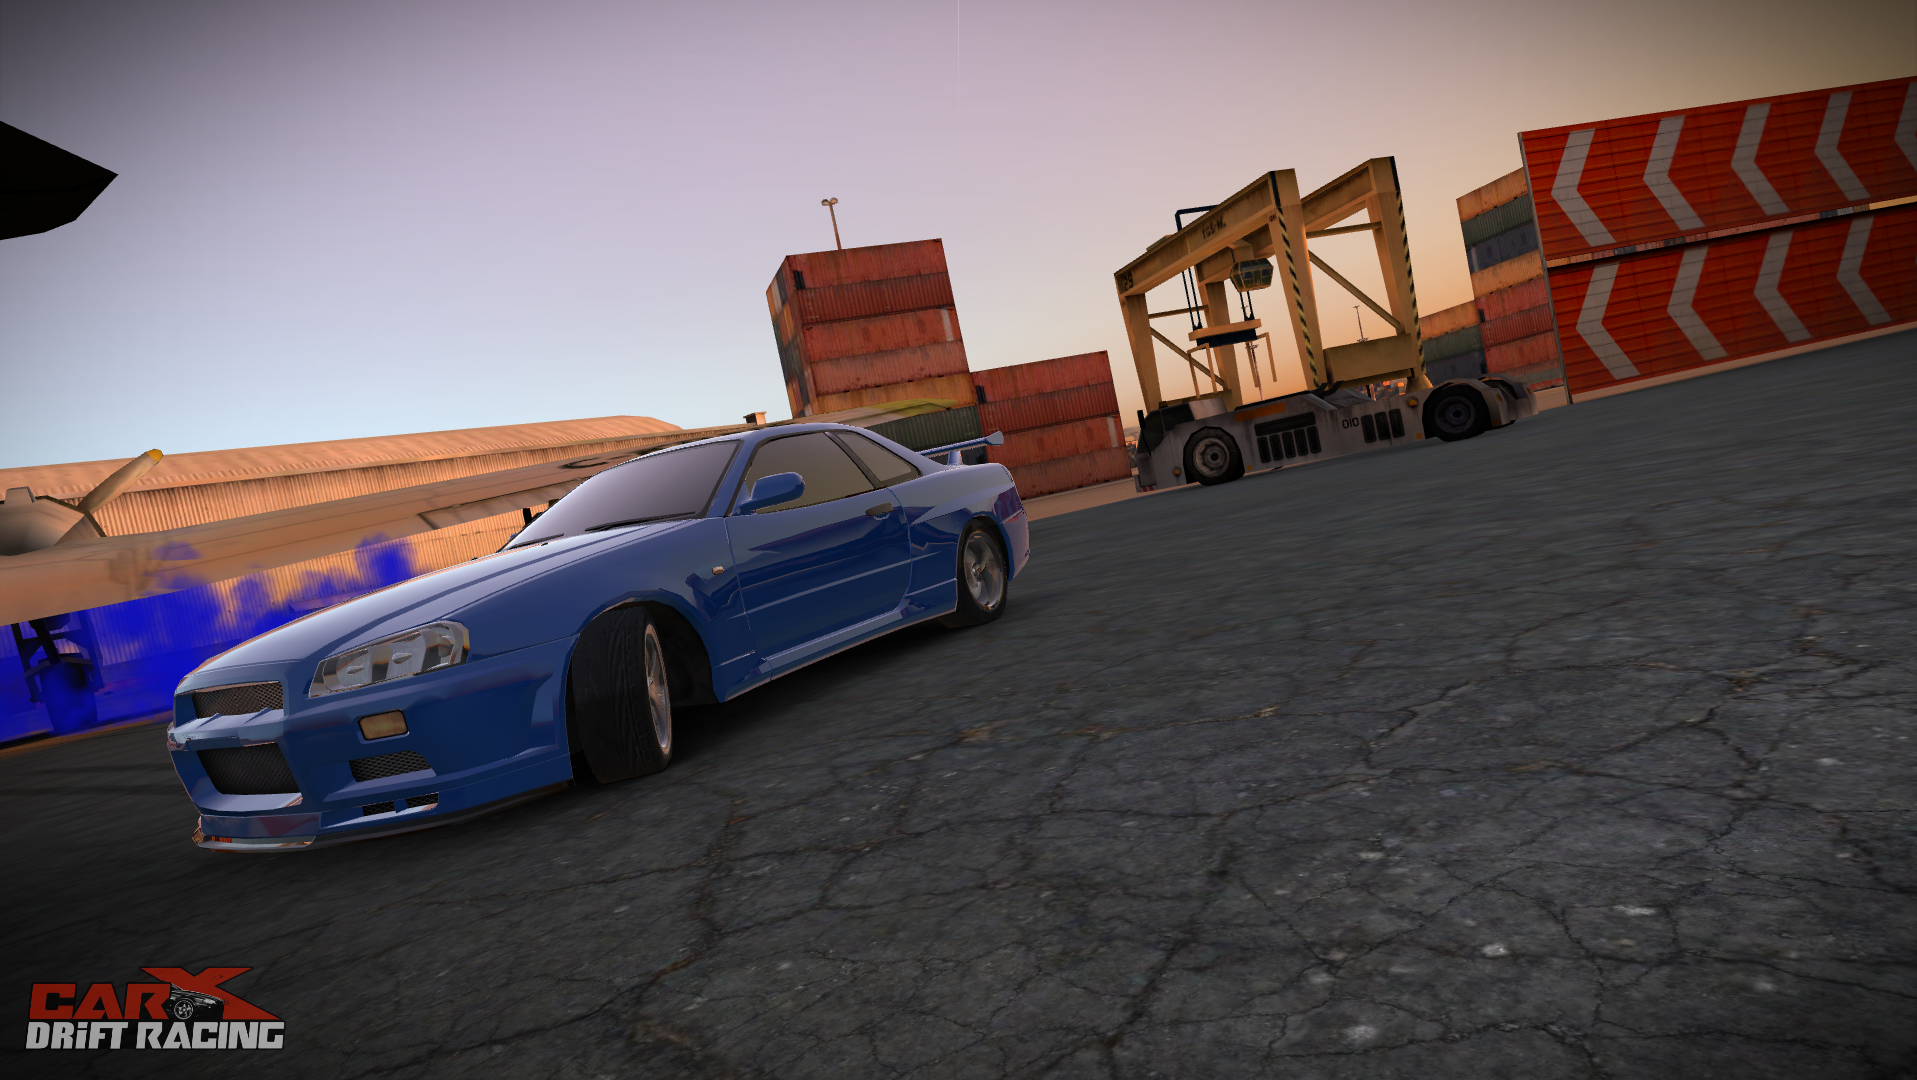 Created by CarX Drift Racing